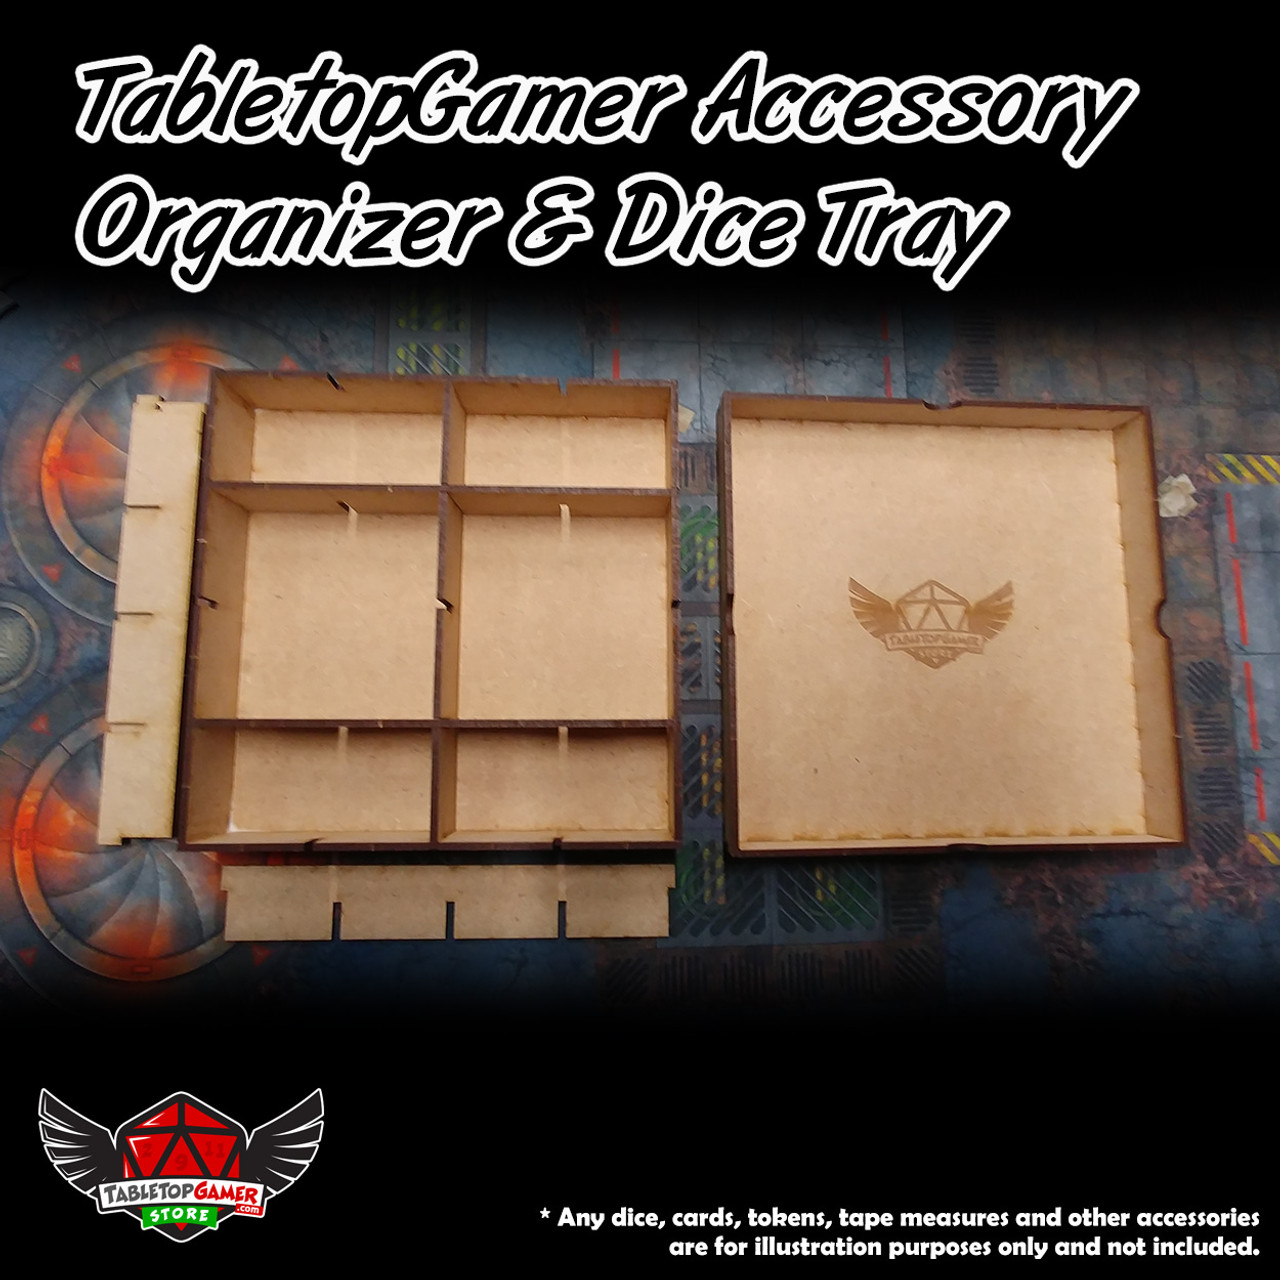 TabletopGamer Accessory Organizer & Dice Tray